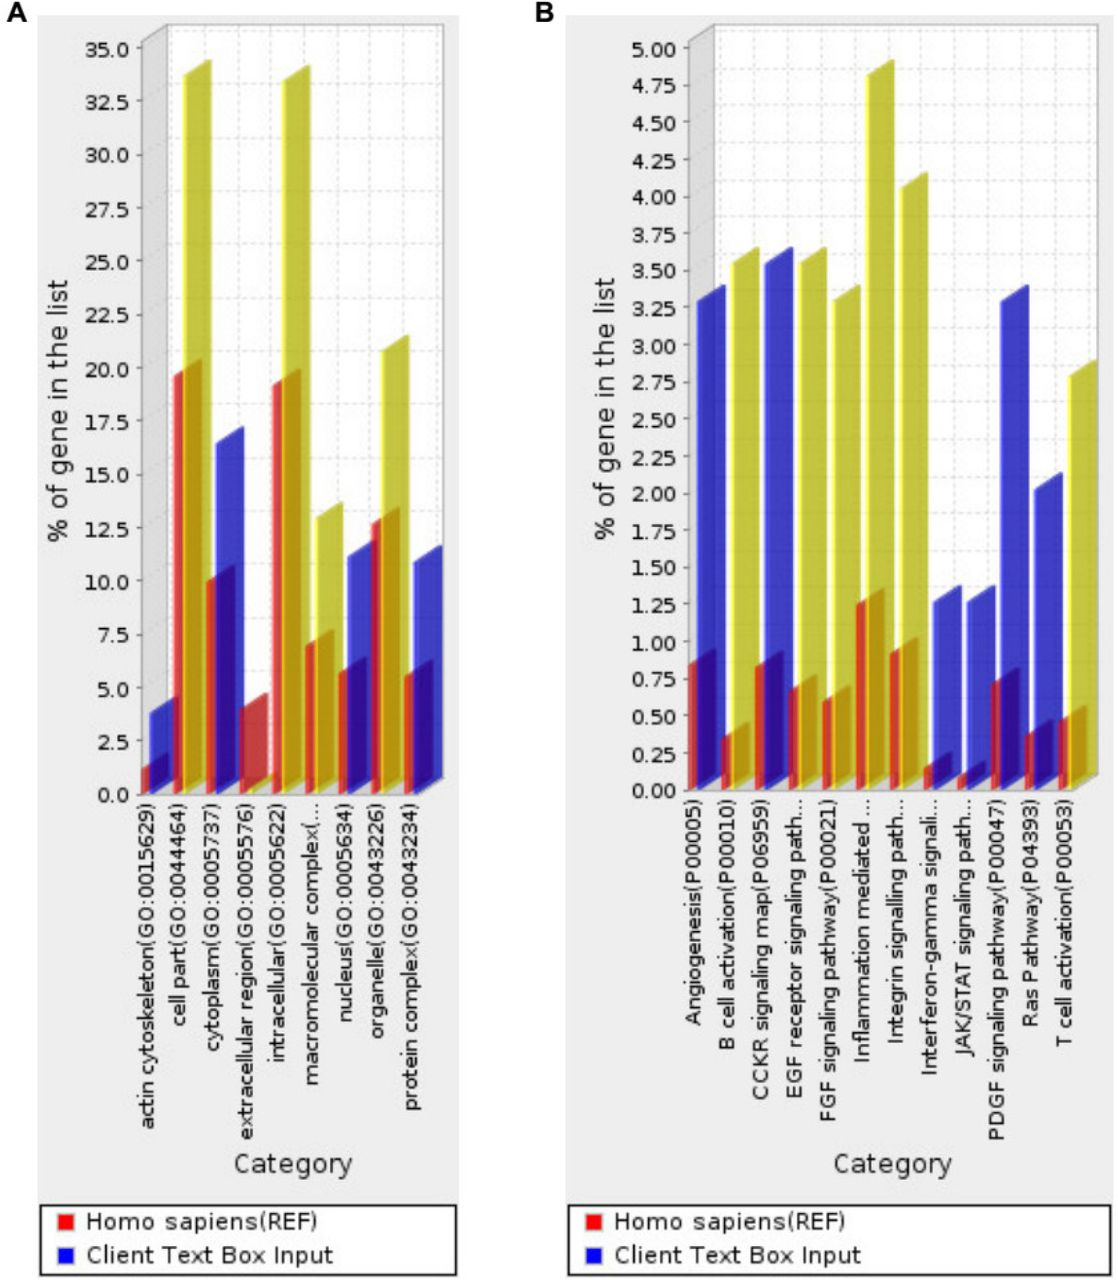 Systematic selection of reference genes for normalization of